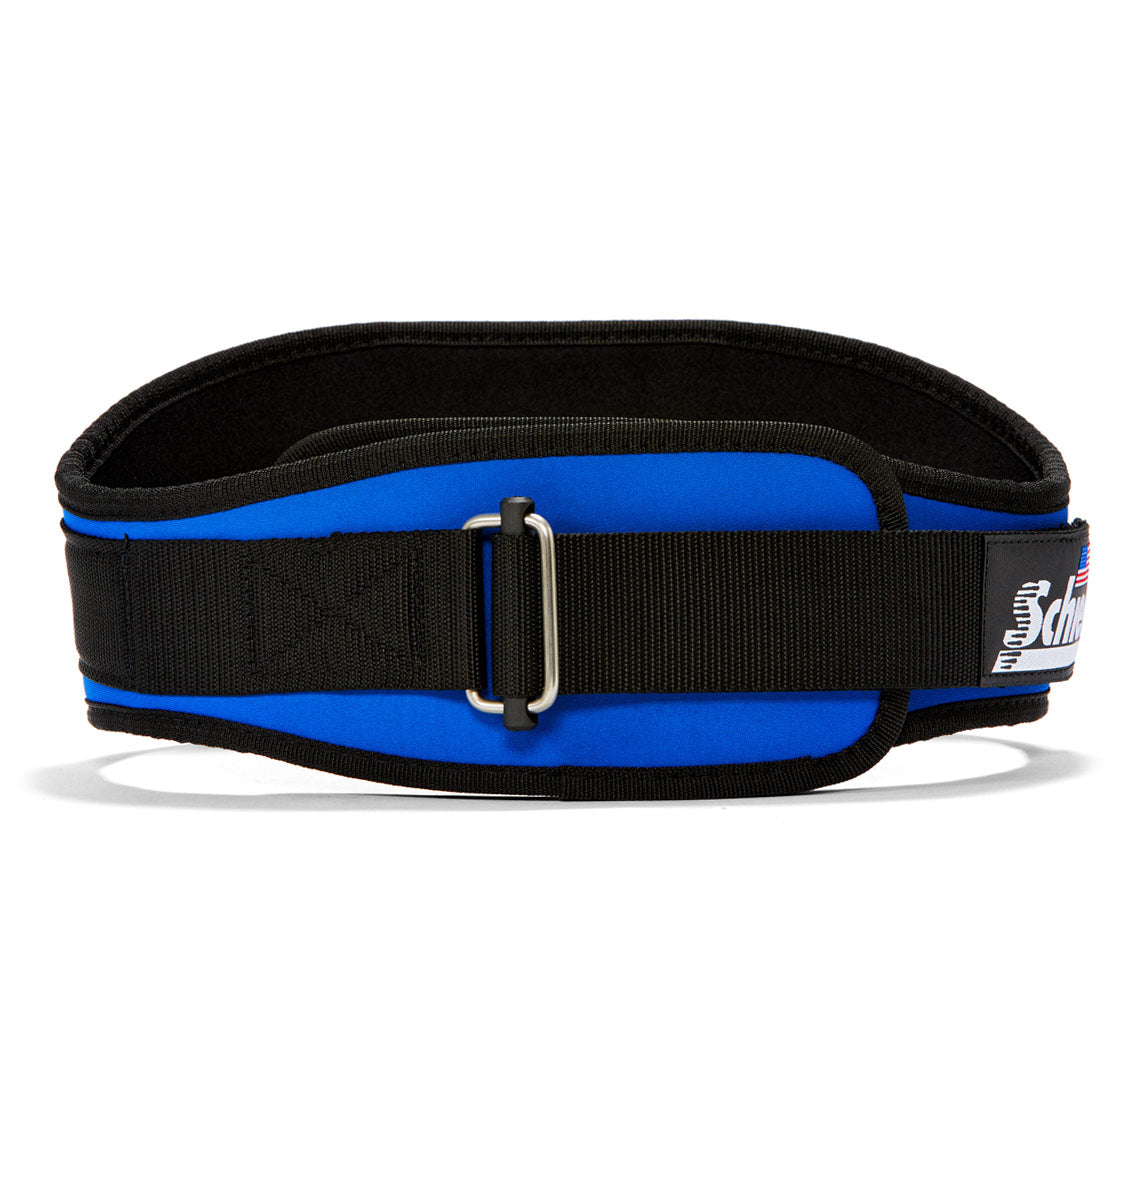 2006 Schiek Contour Weight Lifting Belt Royal Blue Front